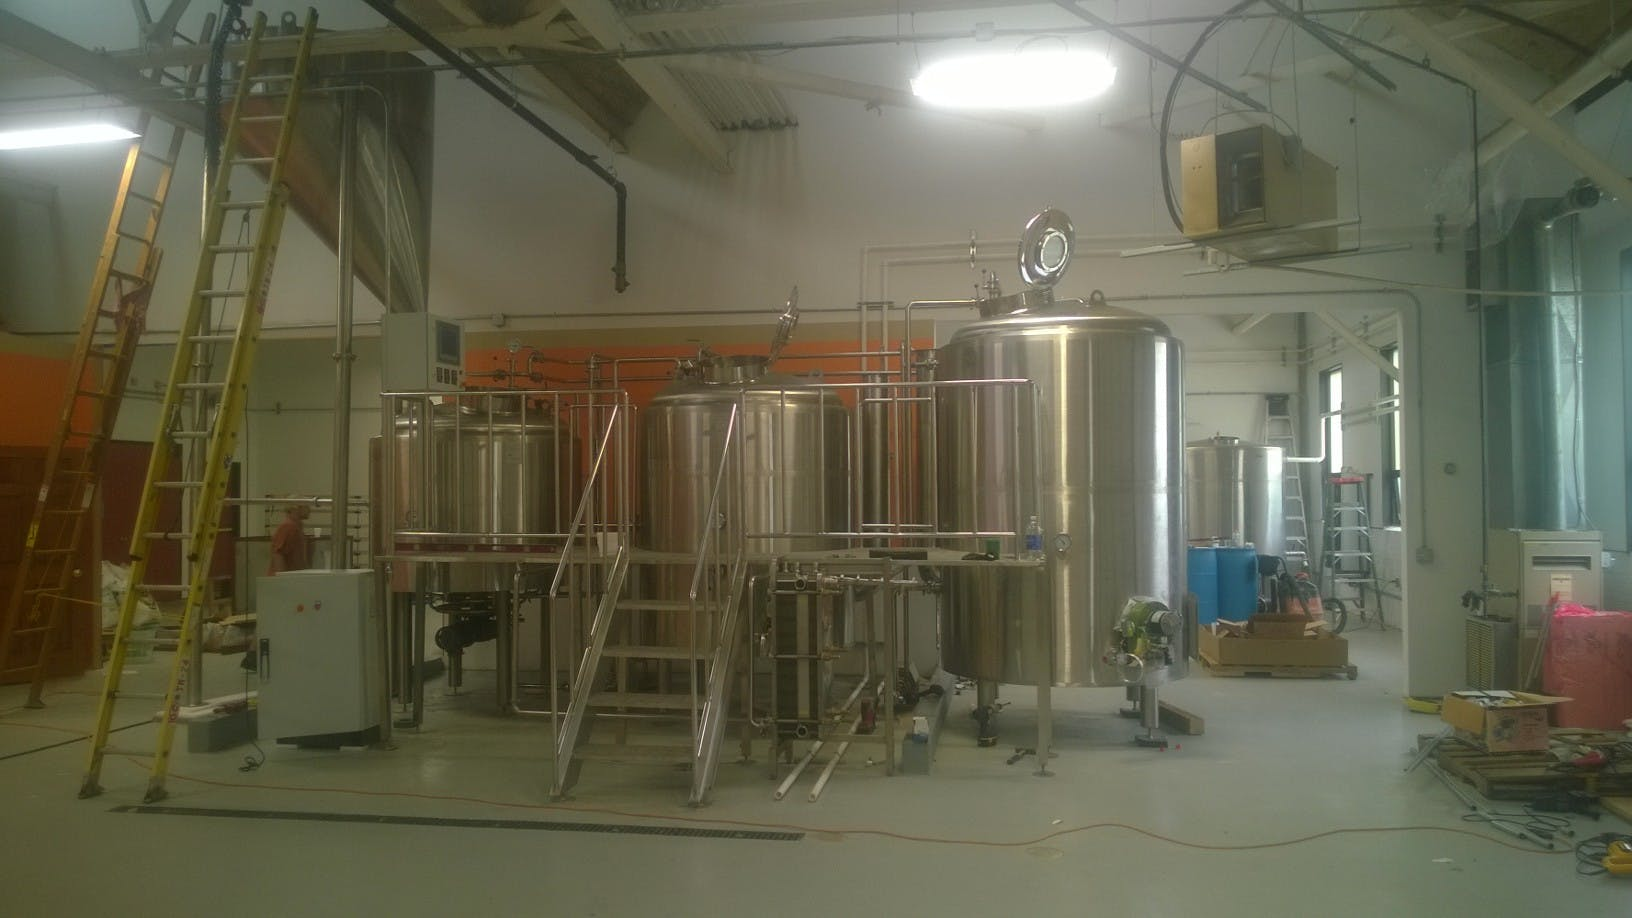 15 Barrel Brewing Systems Brewhouse sold by O'Neill's Brewing Systems LLC